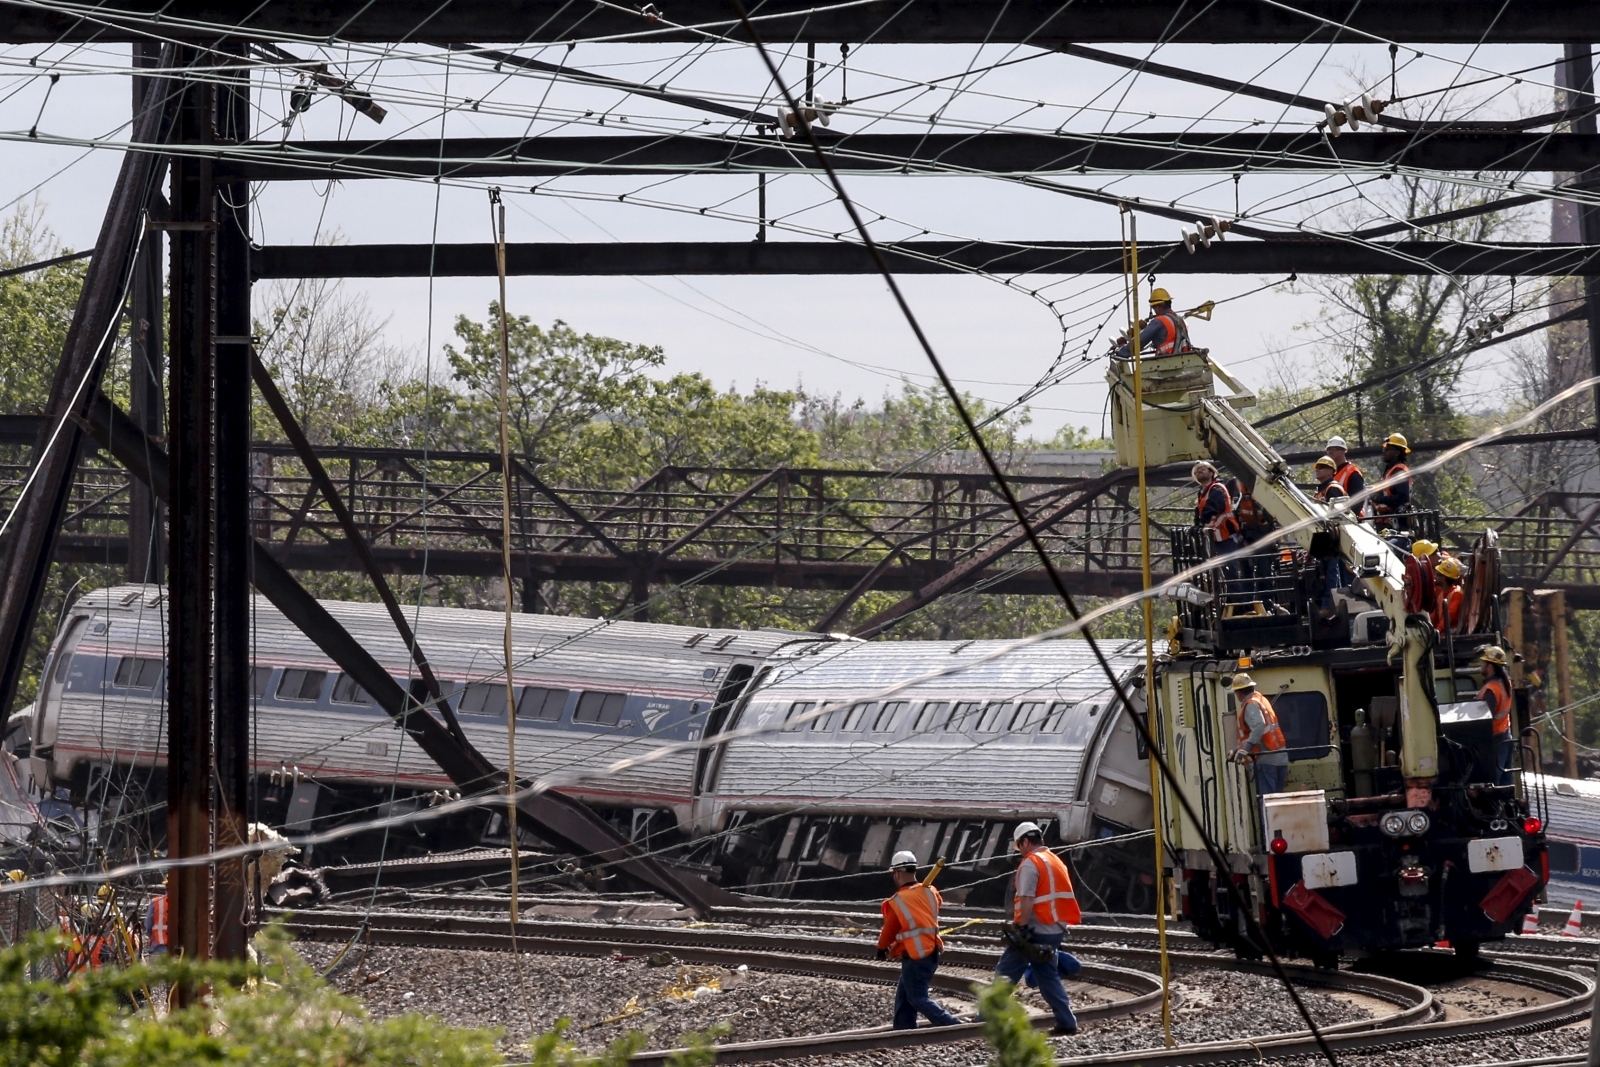 Amtrak train crash